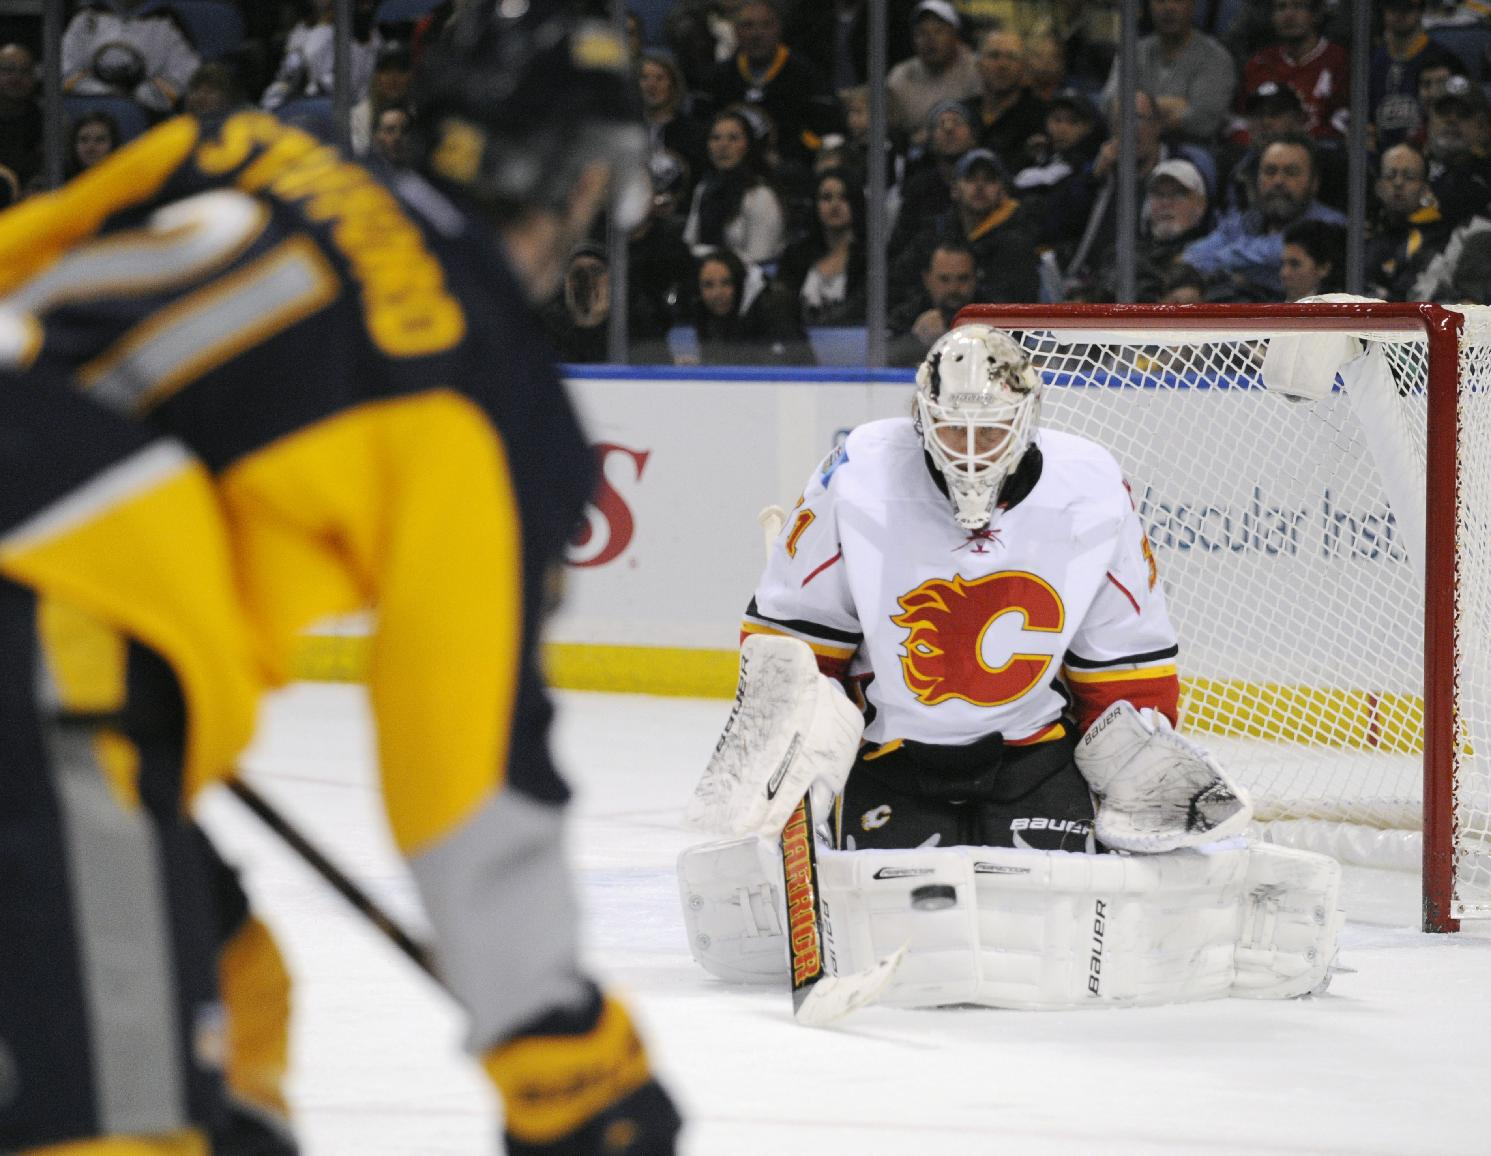 Buffalo Sabres right wing Drew Stafford (21) shoots the puck at Calgary Flames goaltender Karri Ramo (31), of Finland, during the first period of an NHL hockey game in Buffalo, N.Y., Saturday Dec. 14, 2013. Calgary won 2-1